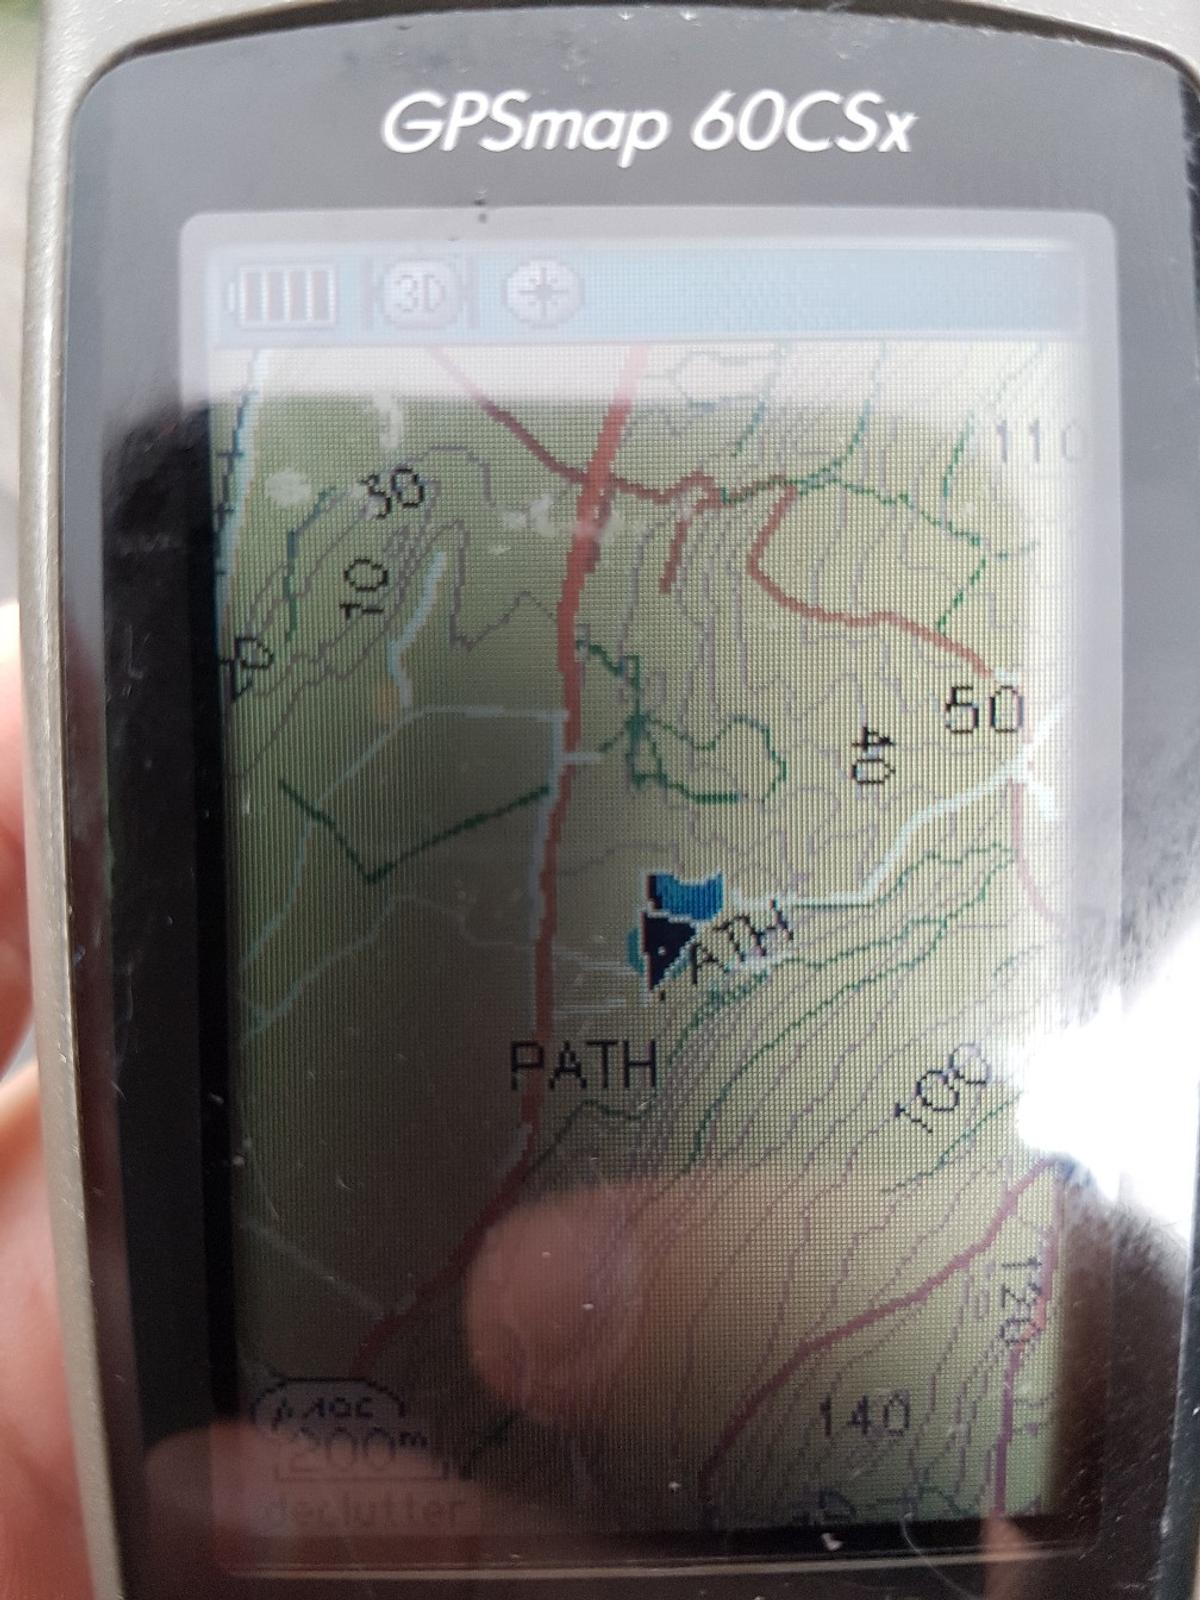 Garmin GPSmap 60CSx in LL47 for £50.00 for sale - Shpock on maps for tomtom, maps for blackberry, maps for humminbird, maps for hp, maps for gps,